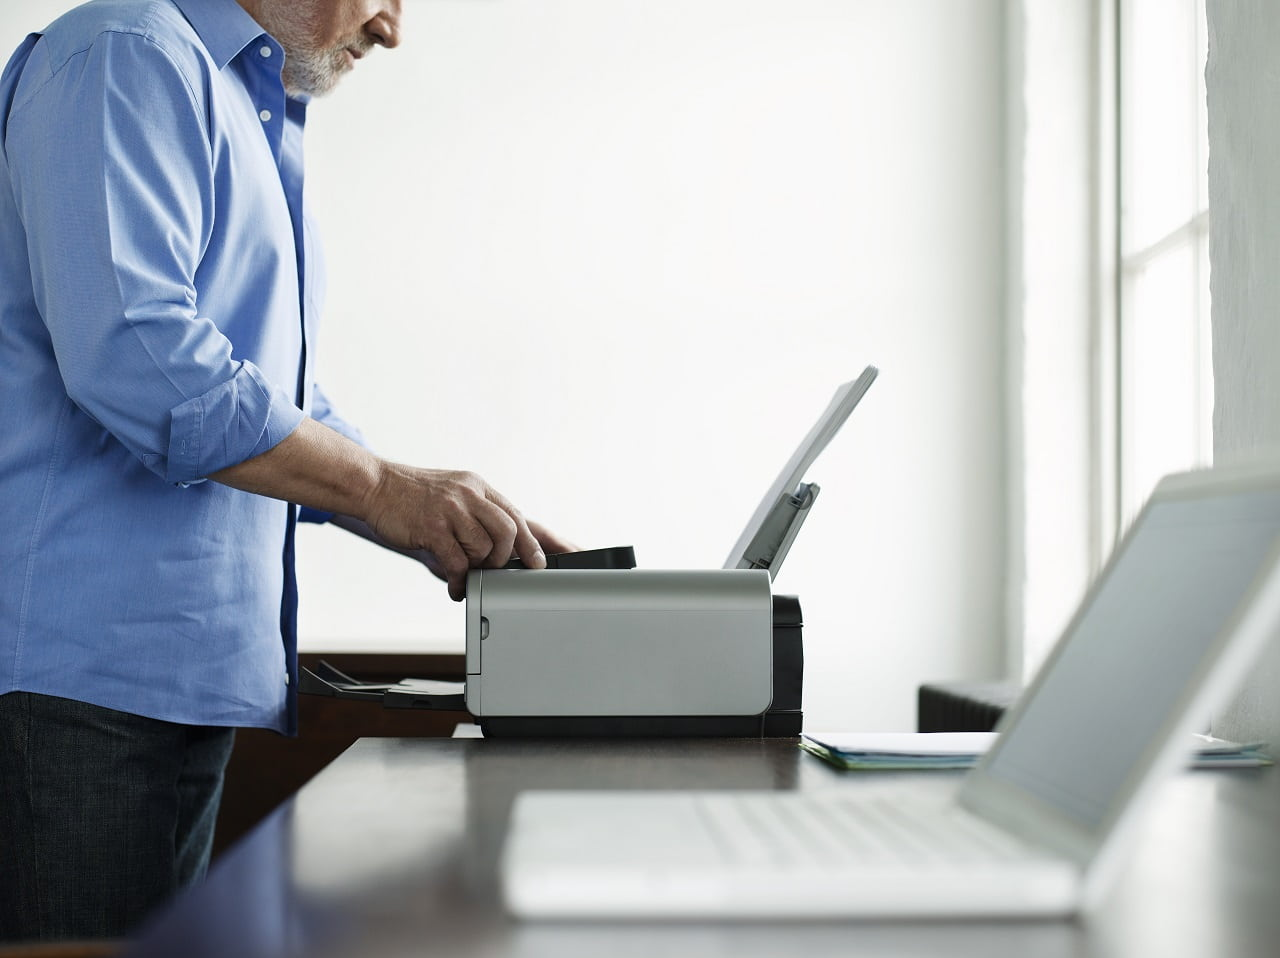 install hp printer without cd